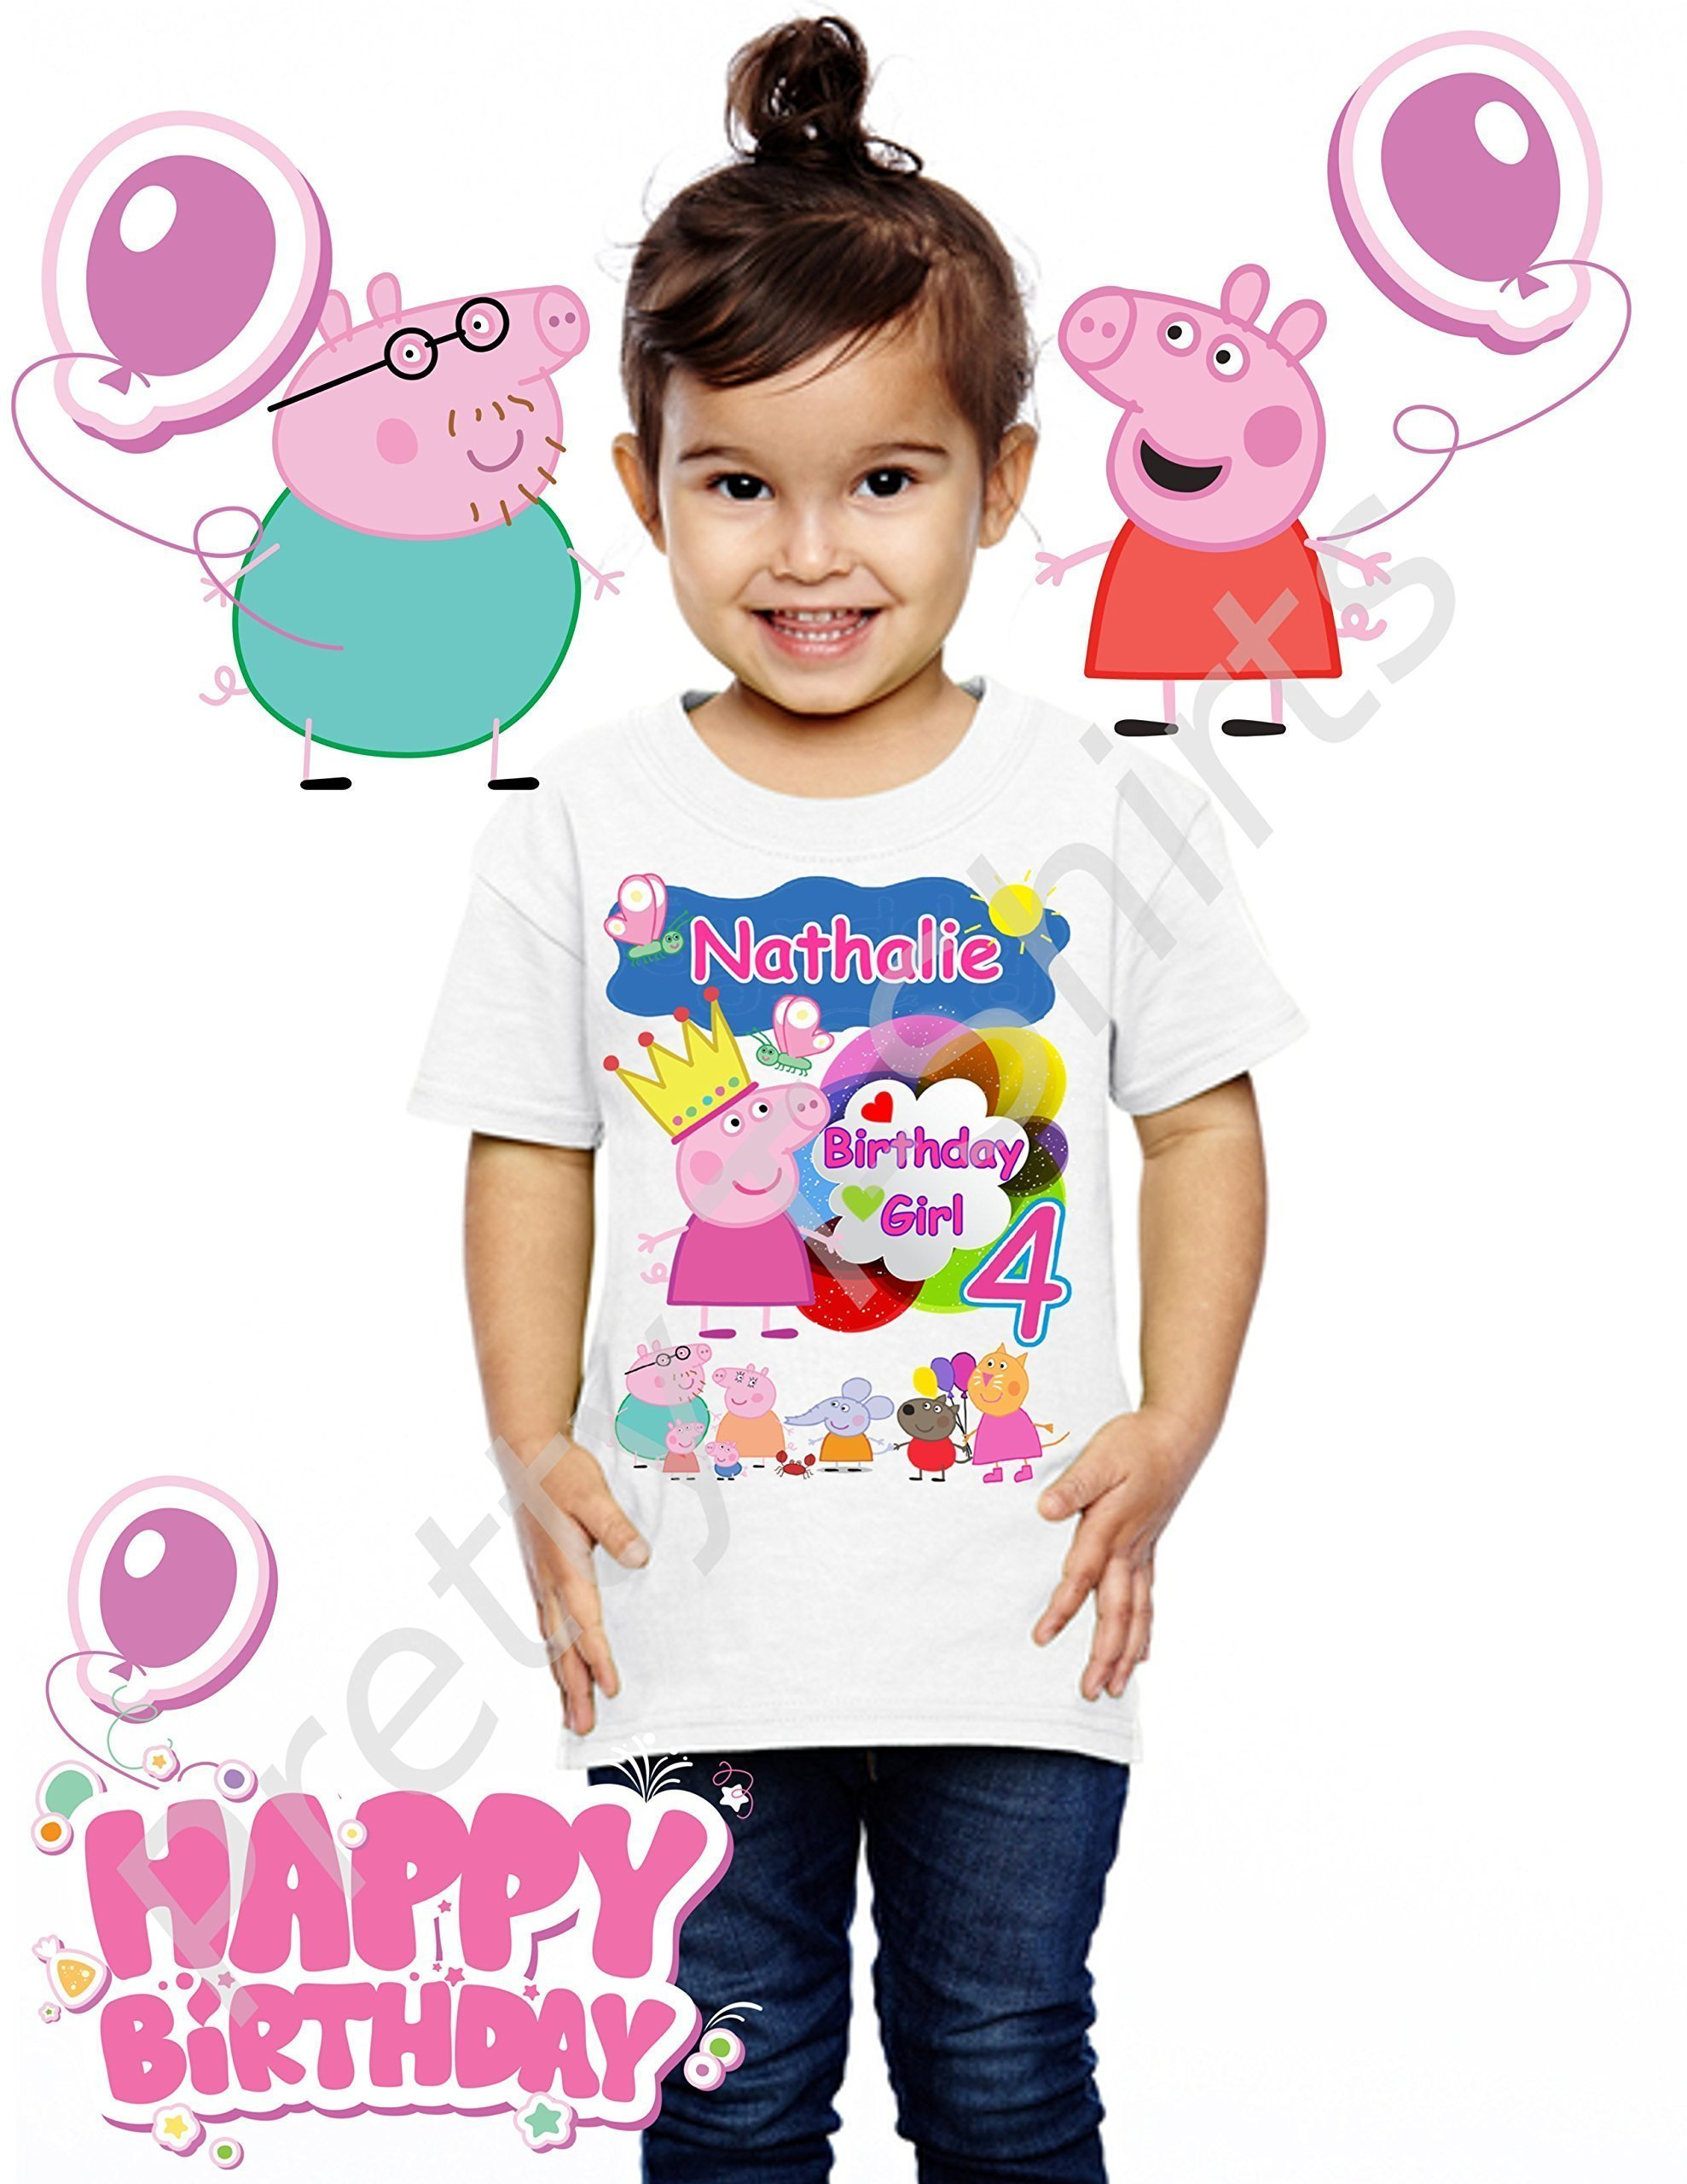 Peppa Pig Birthday Shirt, ADD any name and ANY age, Girl Birthday Shirt, Family Matching Shirts, Peppa Birthday Shirt, Peppa Shirt, Peppa Pig, Princess Peppa, VISIT OUR SHOP!!